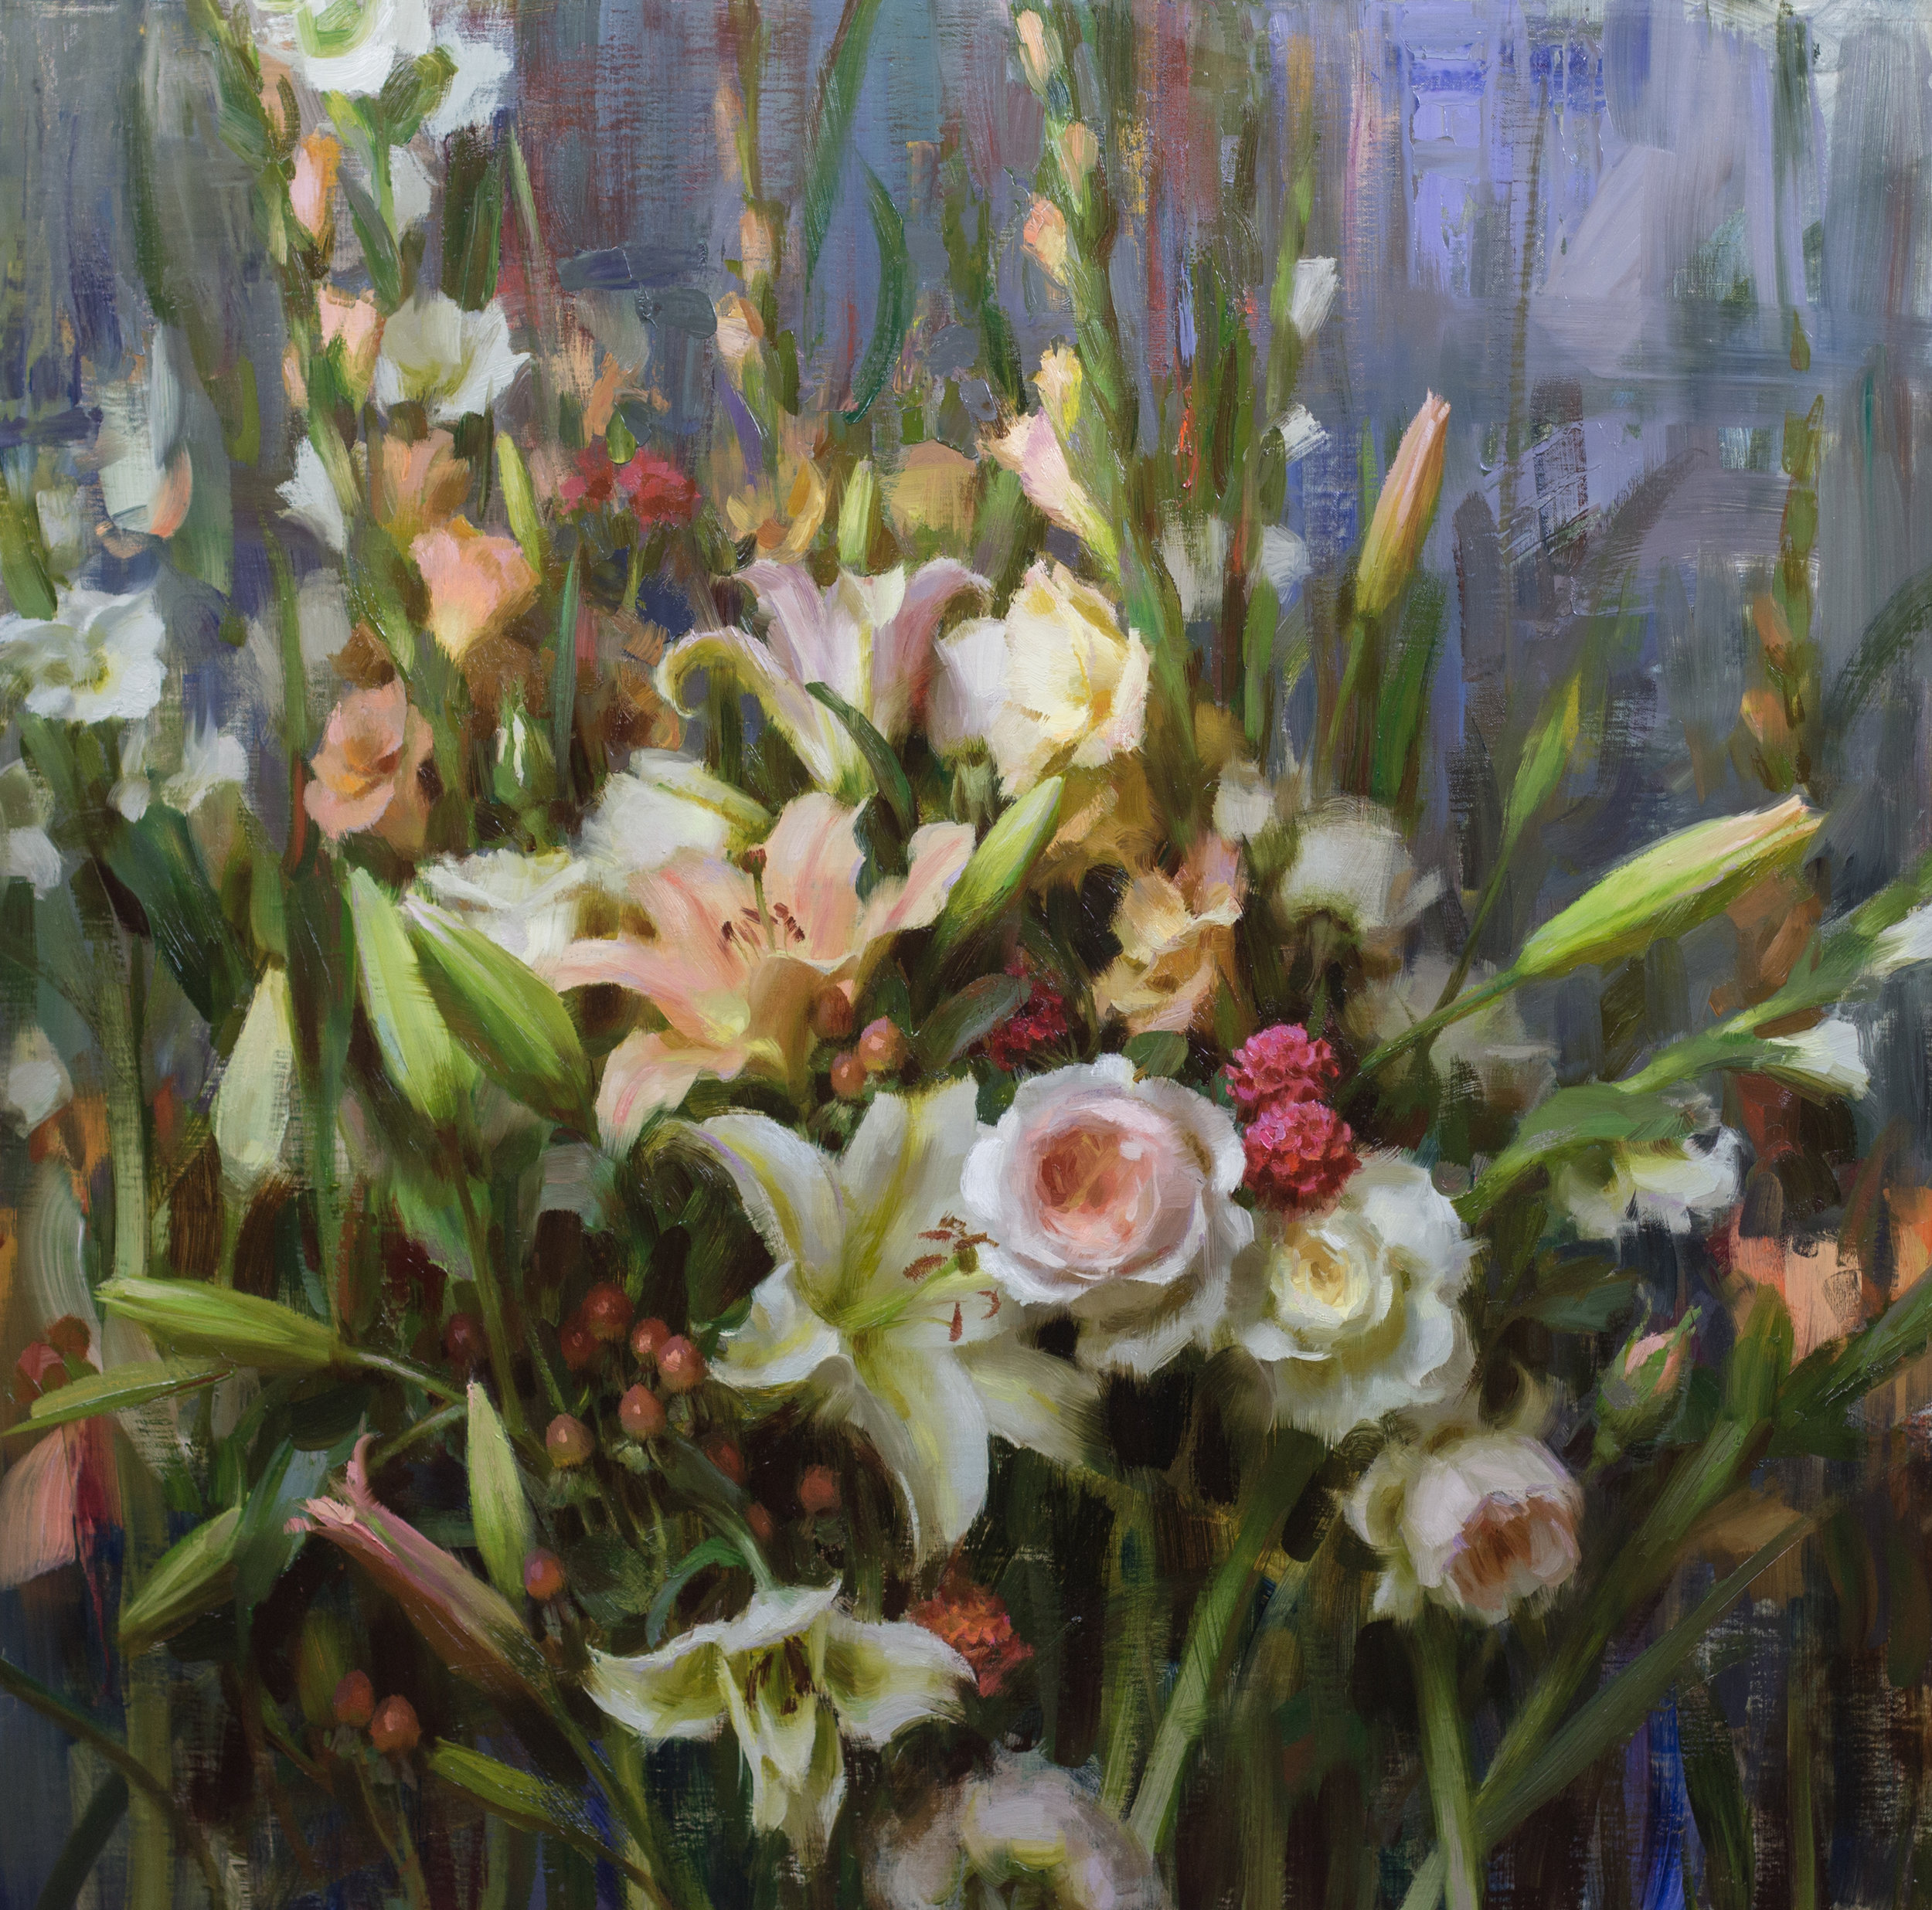 Roses, Lilies, & Gladiolas, 30 x 30 inches, oil on linen